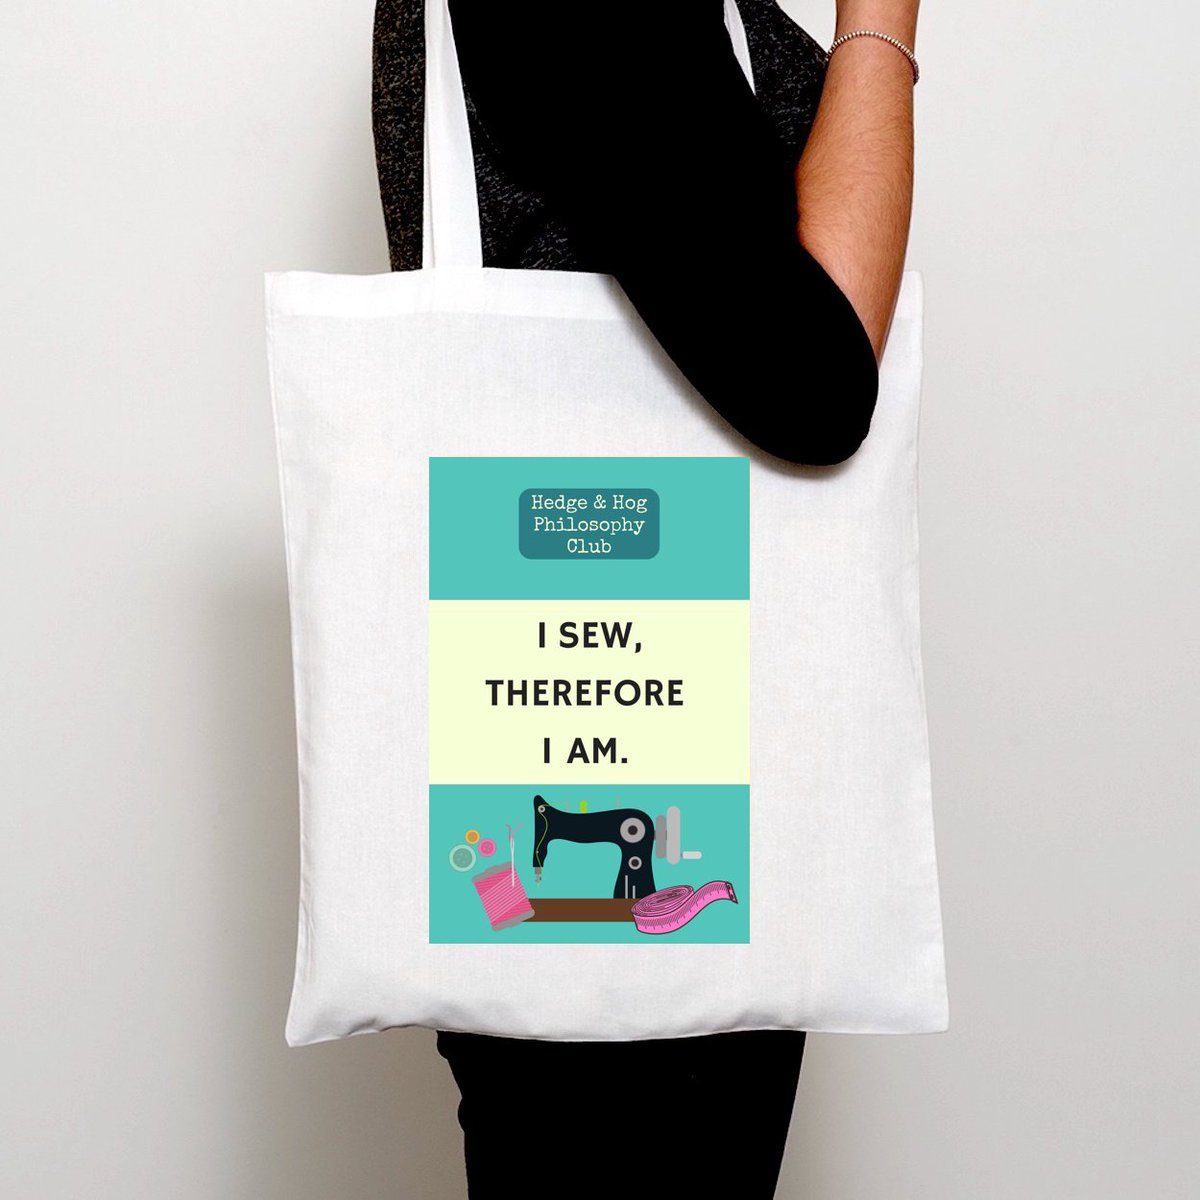 For all my #sewing friends. Keep making magic happen!  http:// goo.gl/gzBymp  &nbsp;   #HandmadeHour #hhlunch #Craftbuzz #crafturday<br>http://pic.twitter.com/zGTPD6moWZ